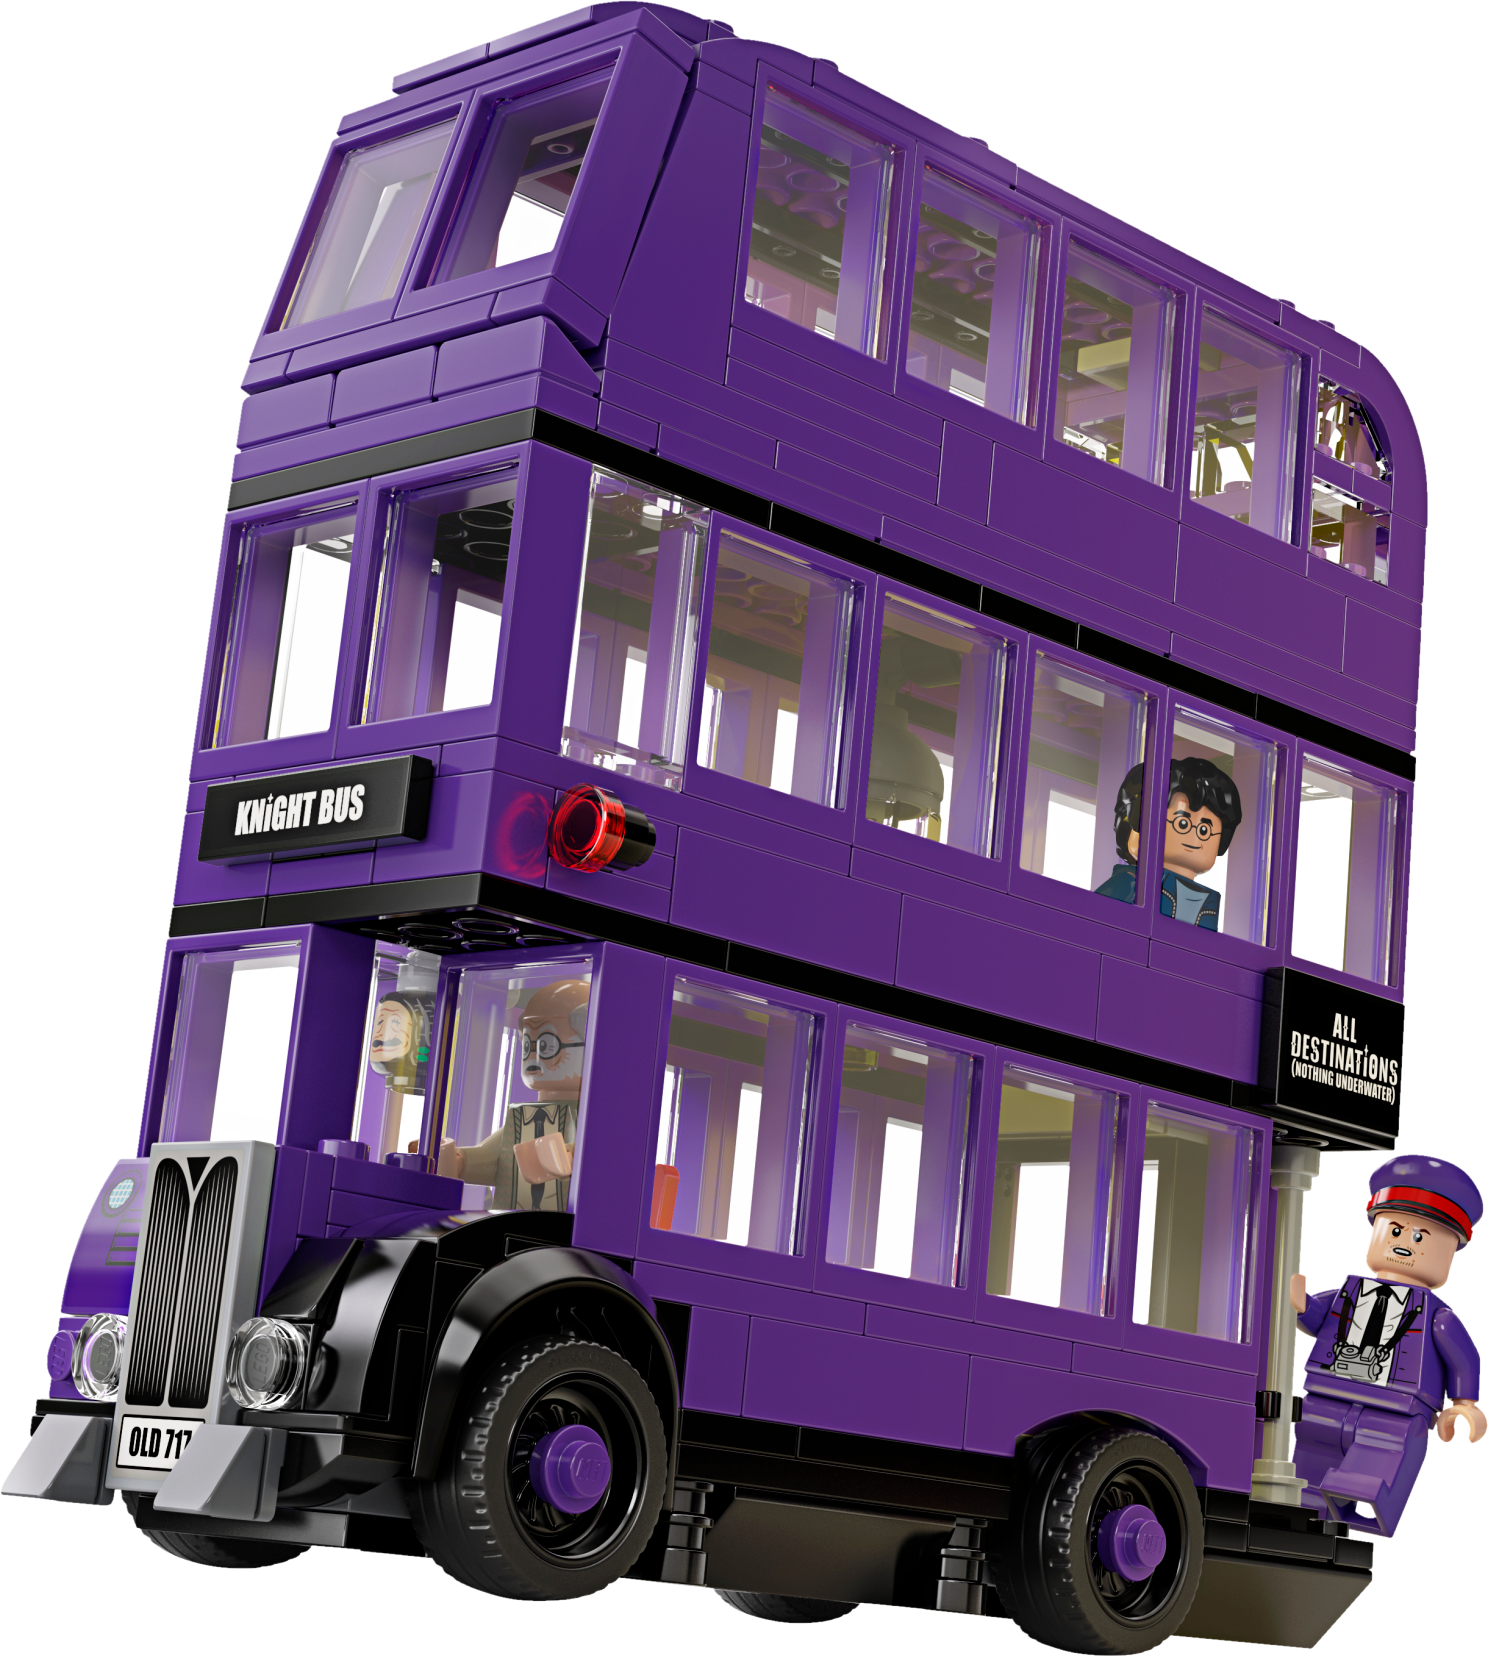 The Knight Bus""